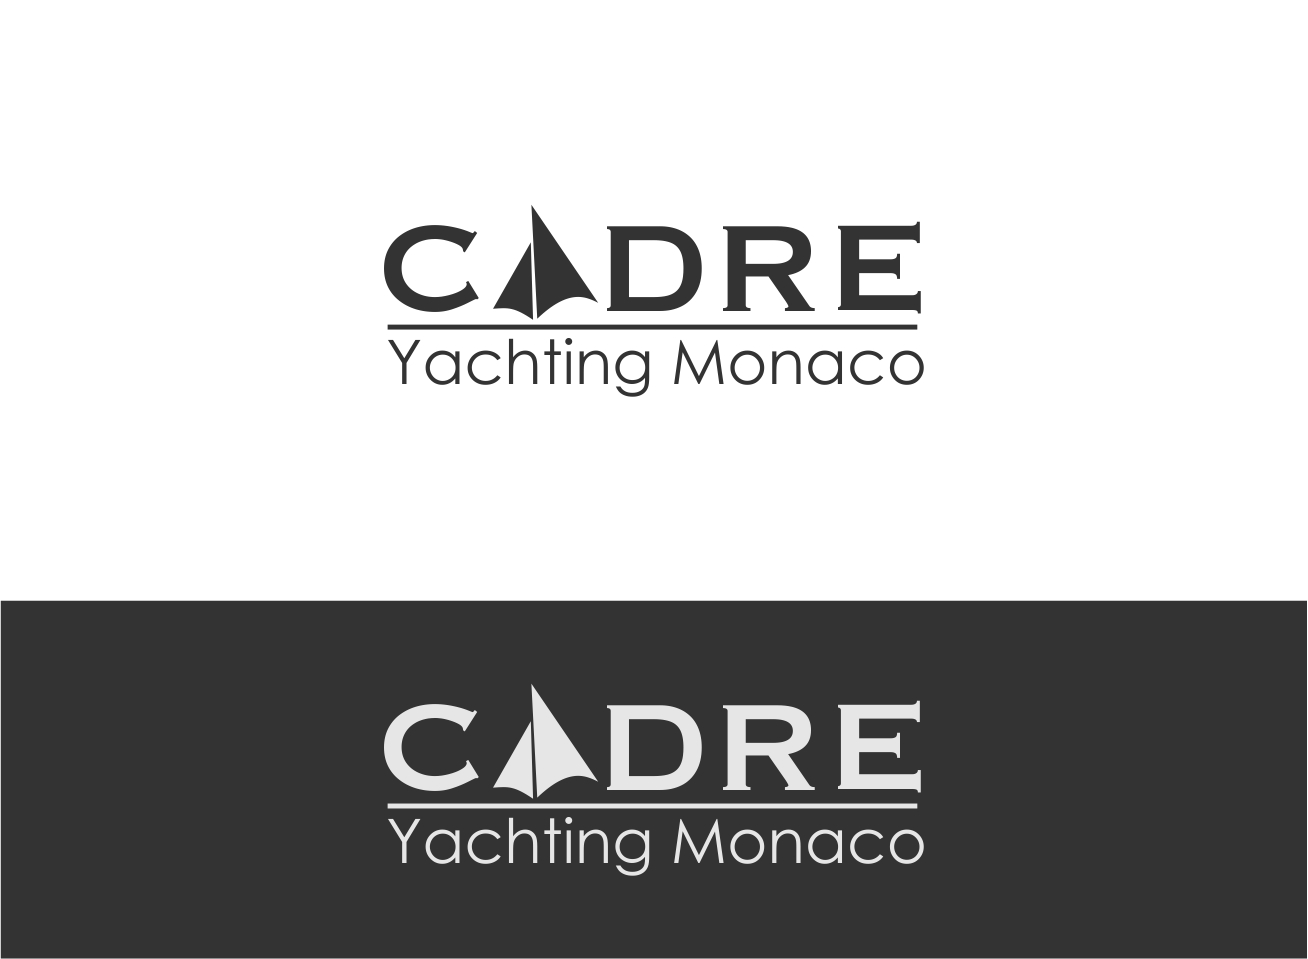 Logo Design by dzoker - Entry No. 361 in the Logo Design Contest New Logo Design for Cadre Yachting Monaco.